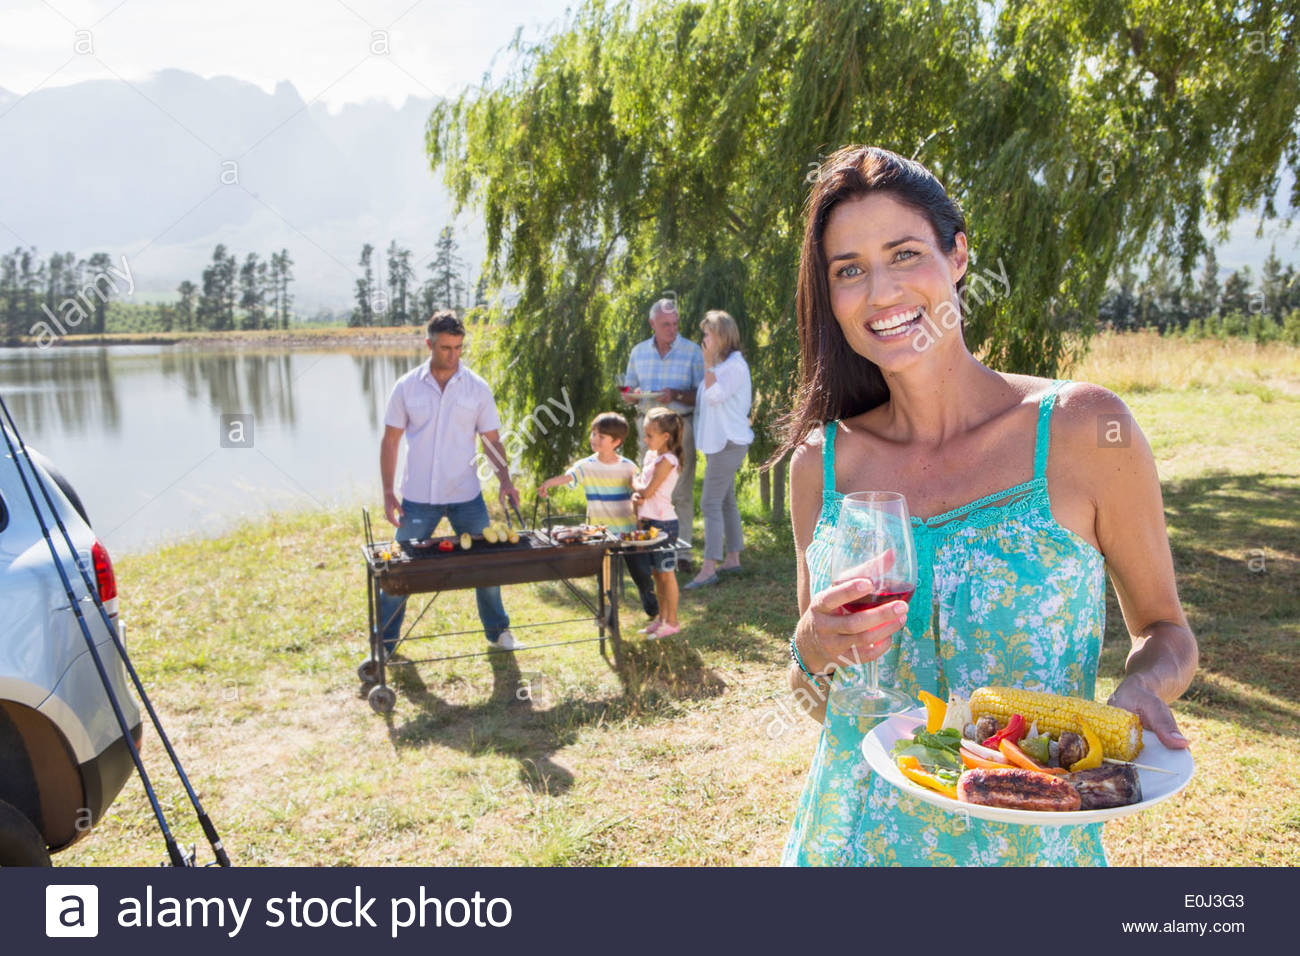 Cooking Barbeque in Countryside Photo Stock